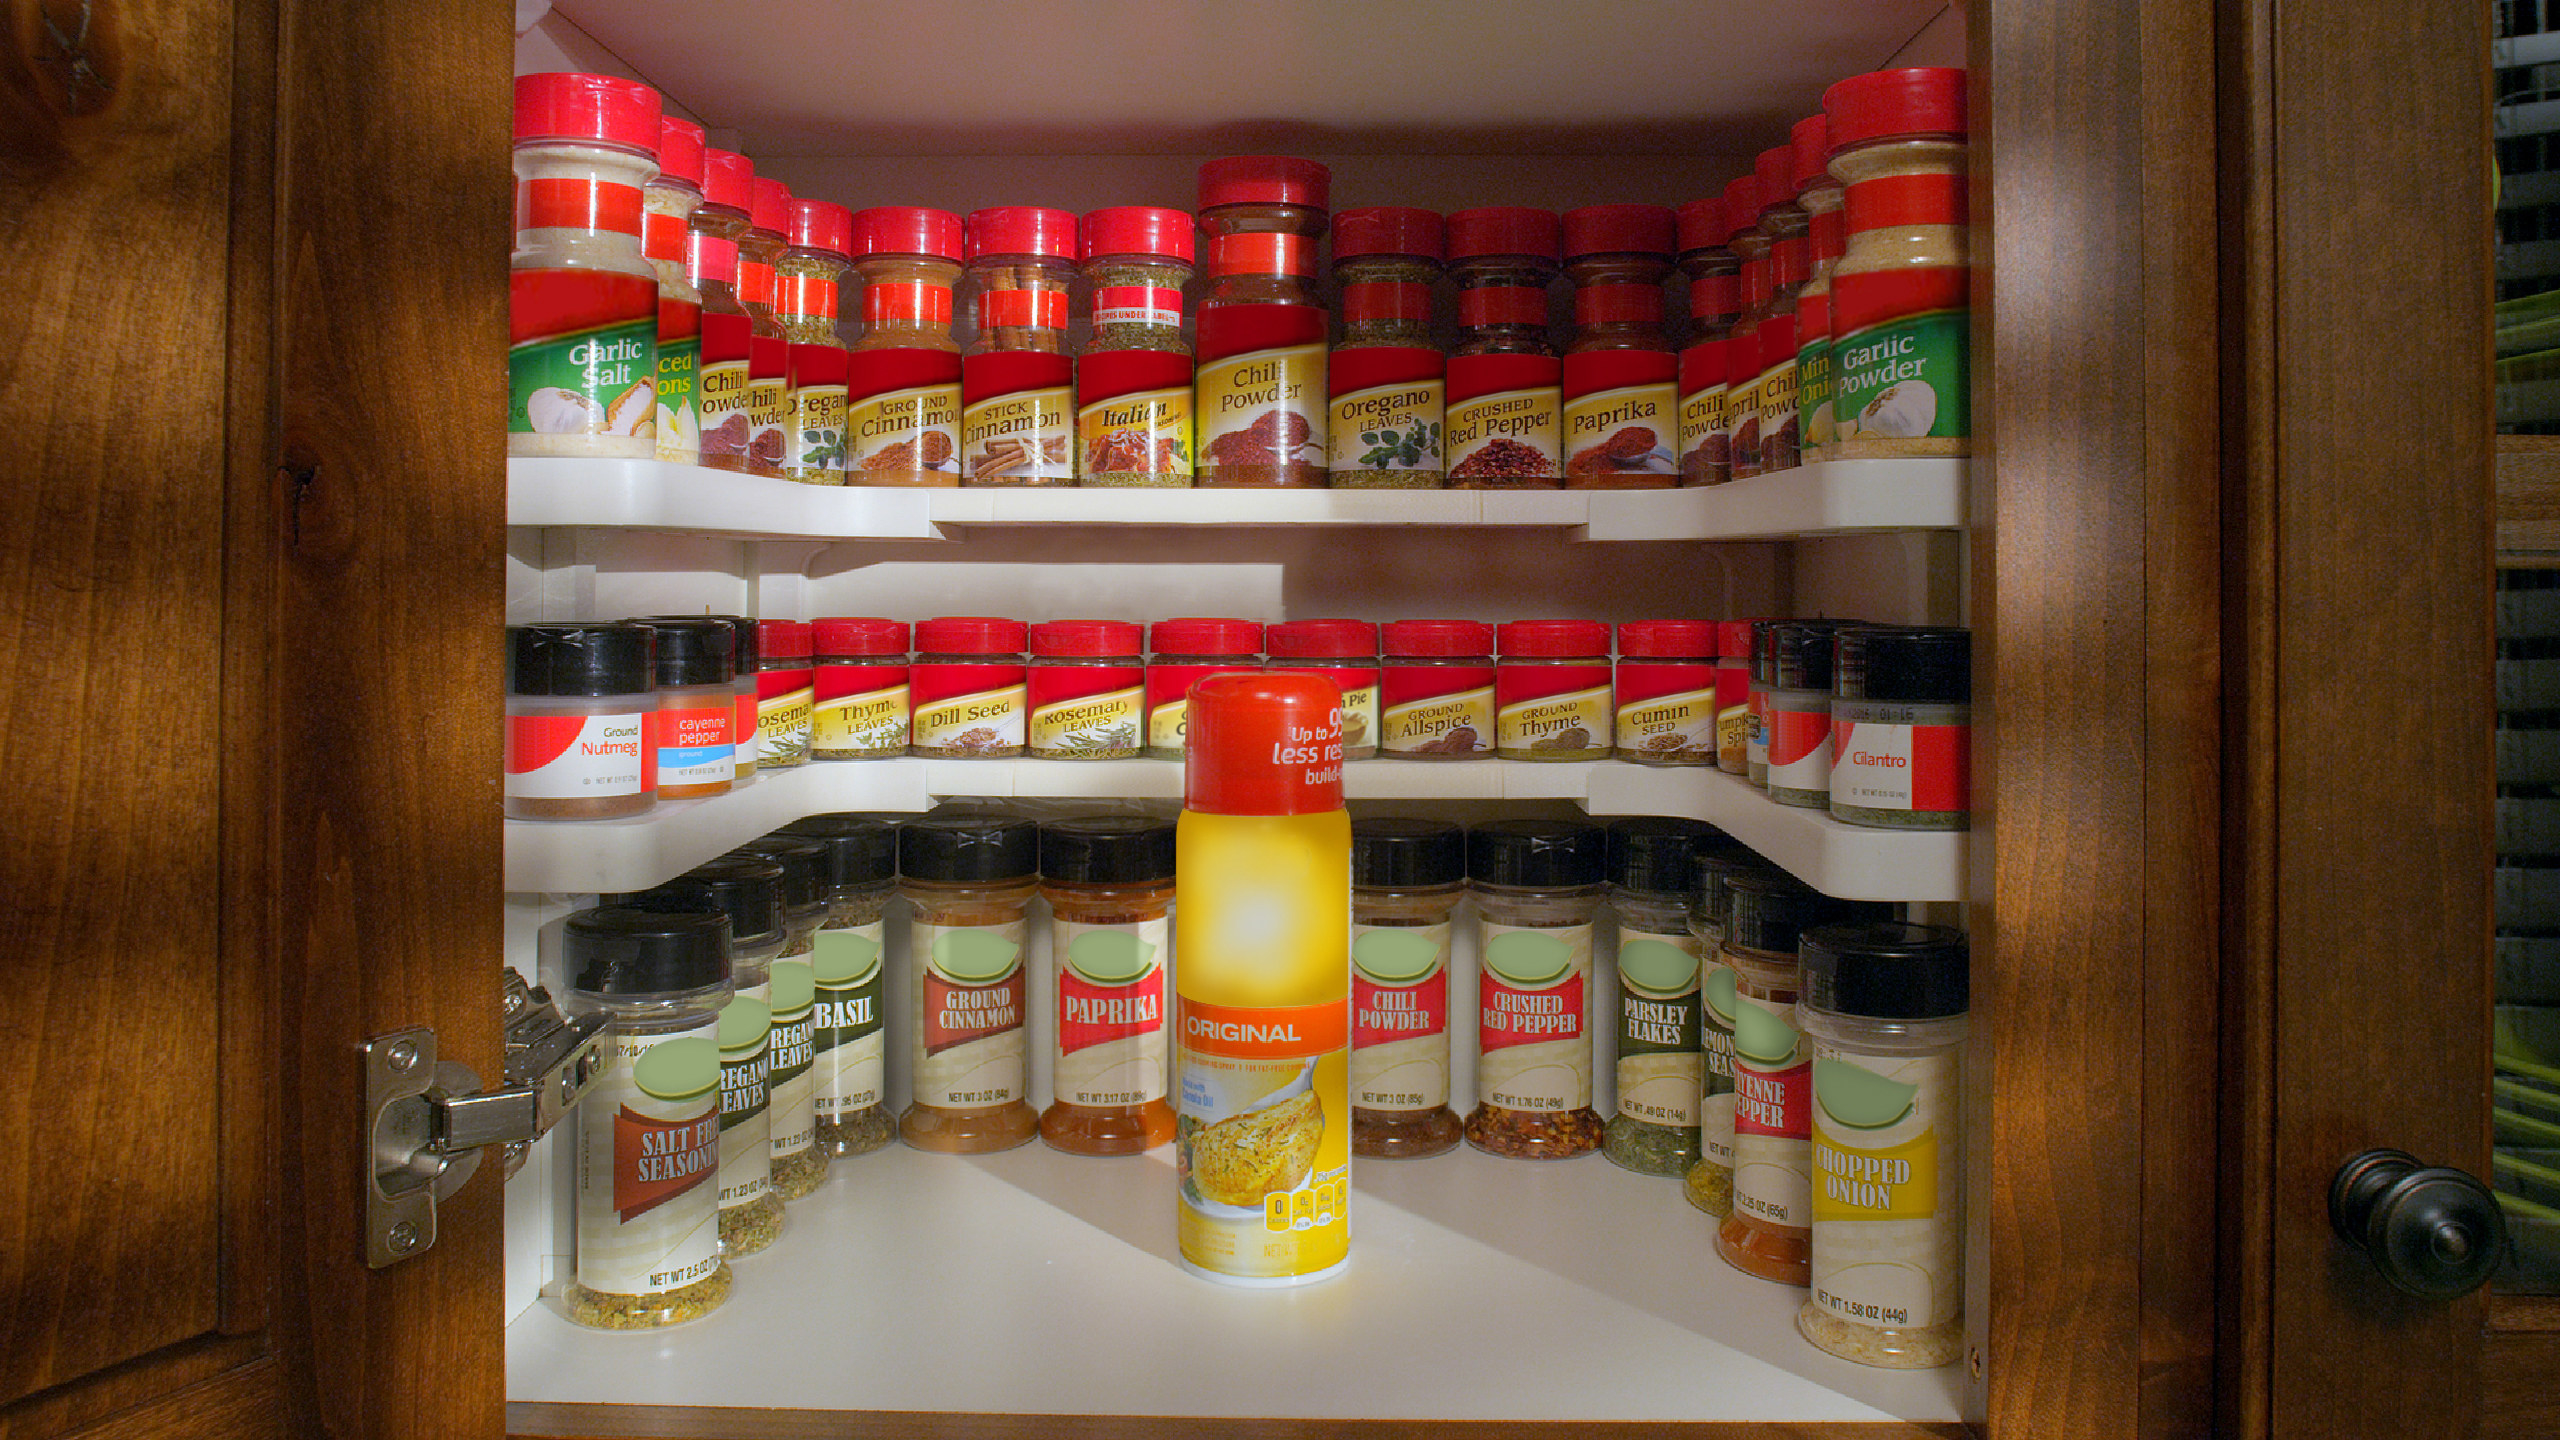 spicy shelf organization system with spice jars on it